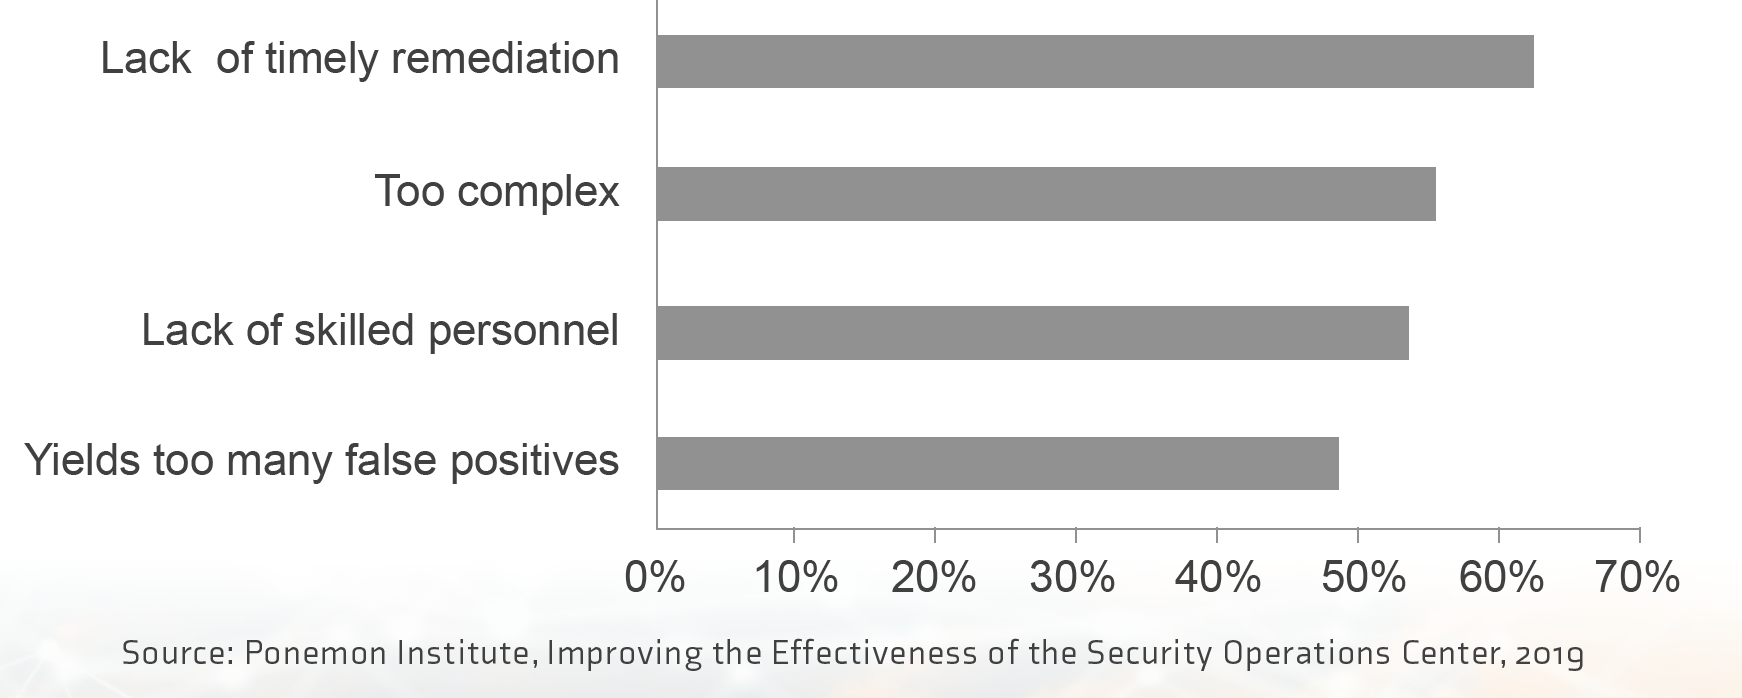 Source: Ponemon Institute, Improving the Effectiveness of the Security Operations Center, 2019